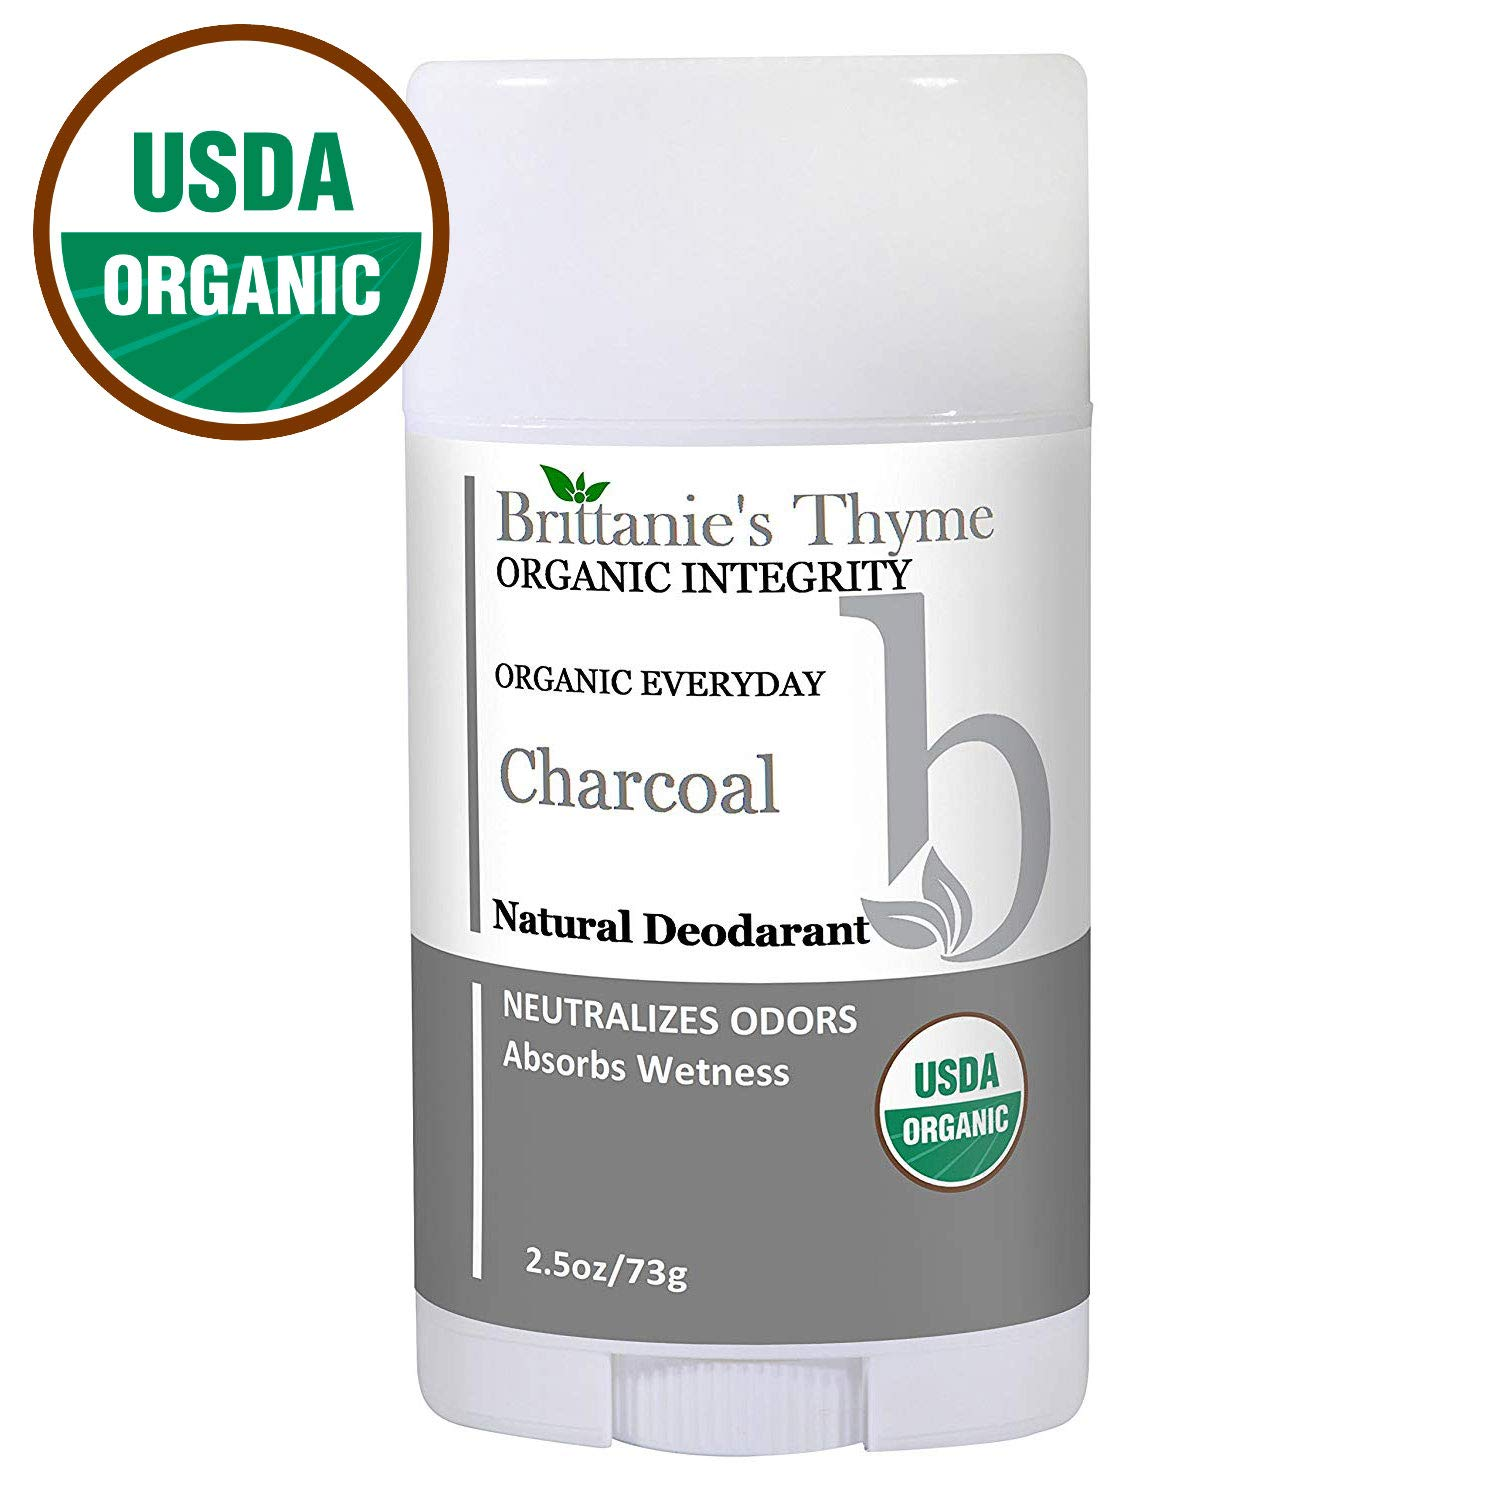 Organic Charcoal Deodorant - The Only USDA Certified Organic, Certified Gluten Free, Vegan, Cruelty Free for Men & Women